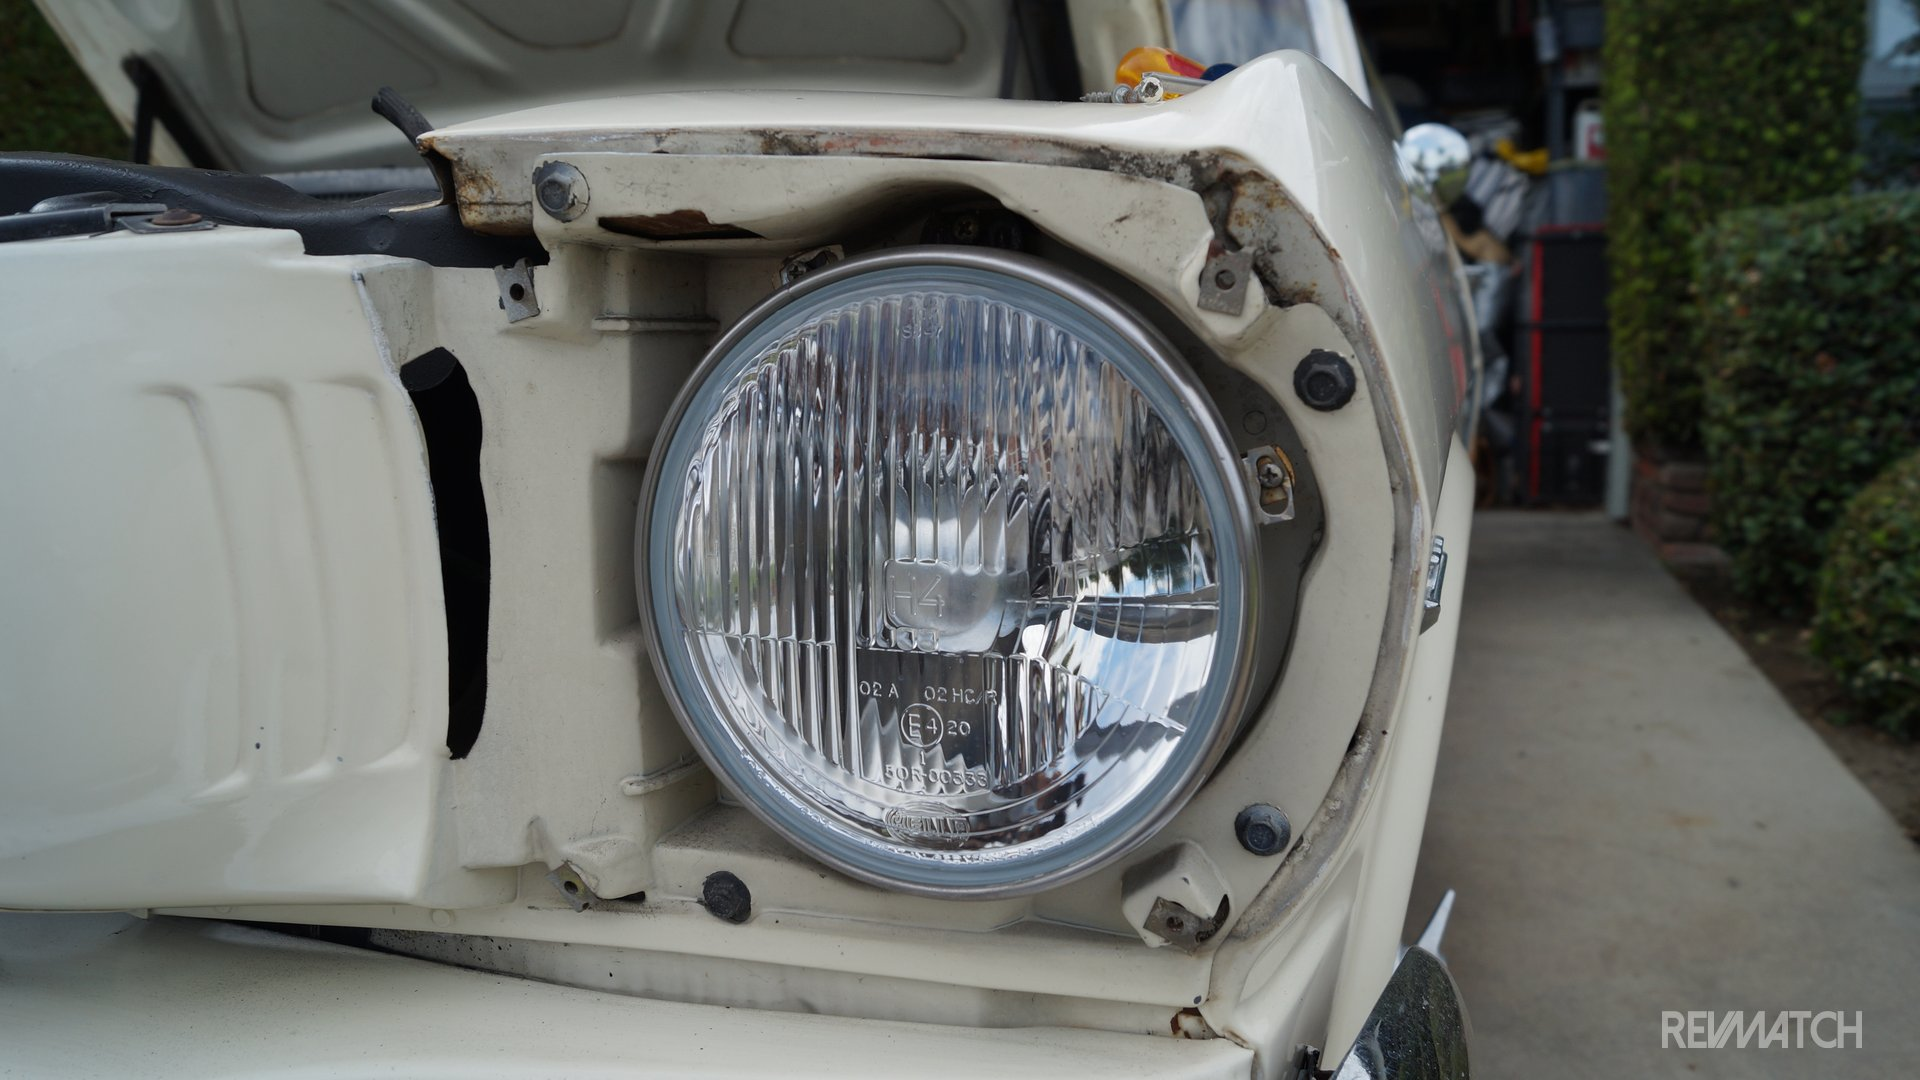 H4 Wiring With Diode Diagram And Ebooks Bi Xenon Hid Mx 6 Classic Meets Modern Dapper Lighting 7 Quot V1 Pinout Headlight